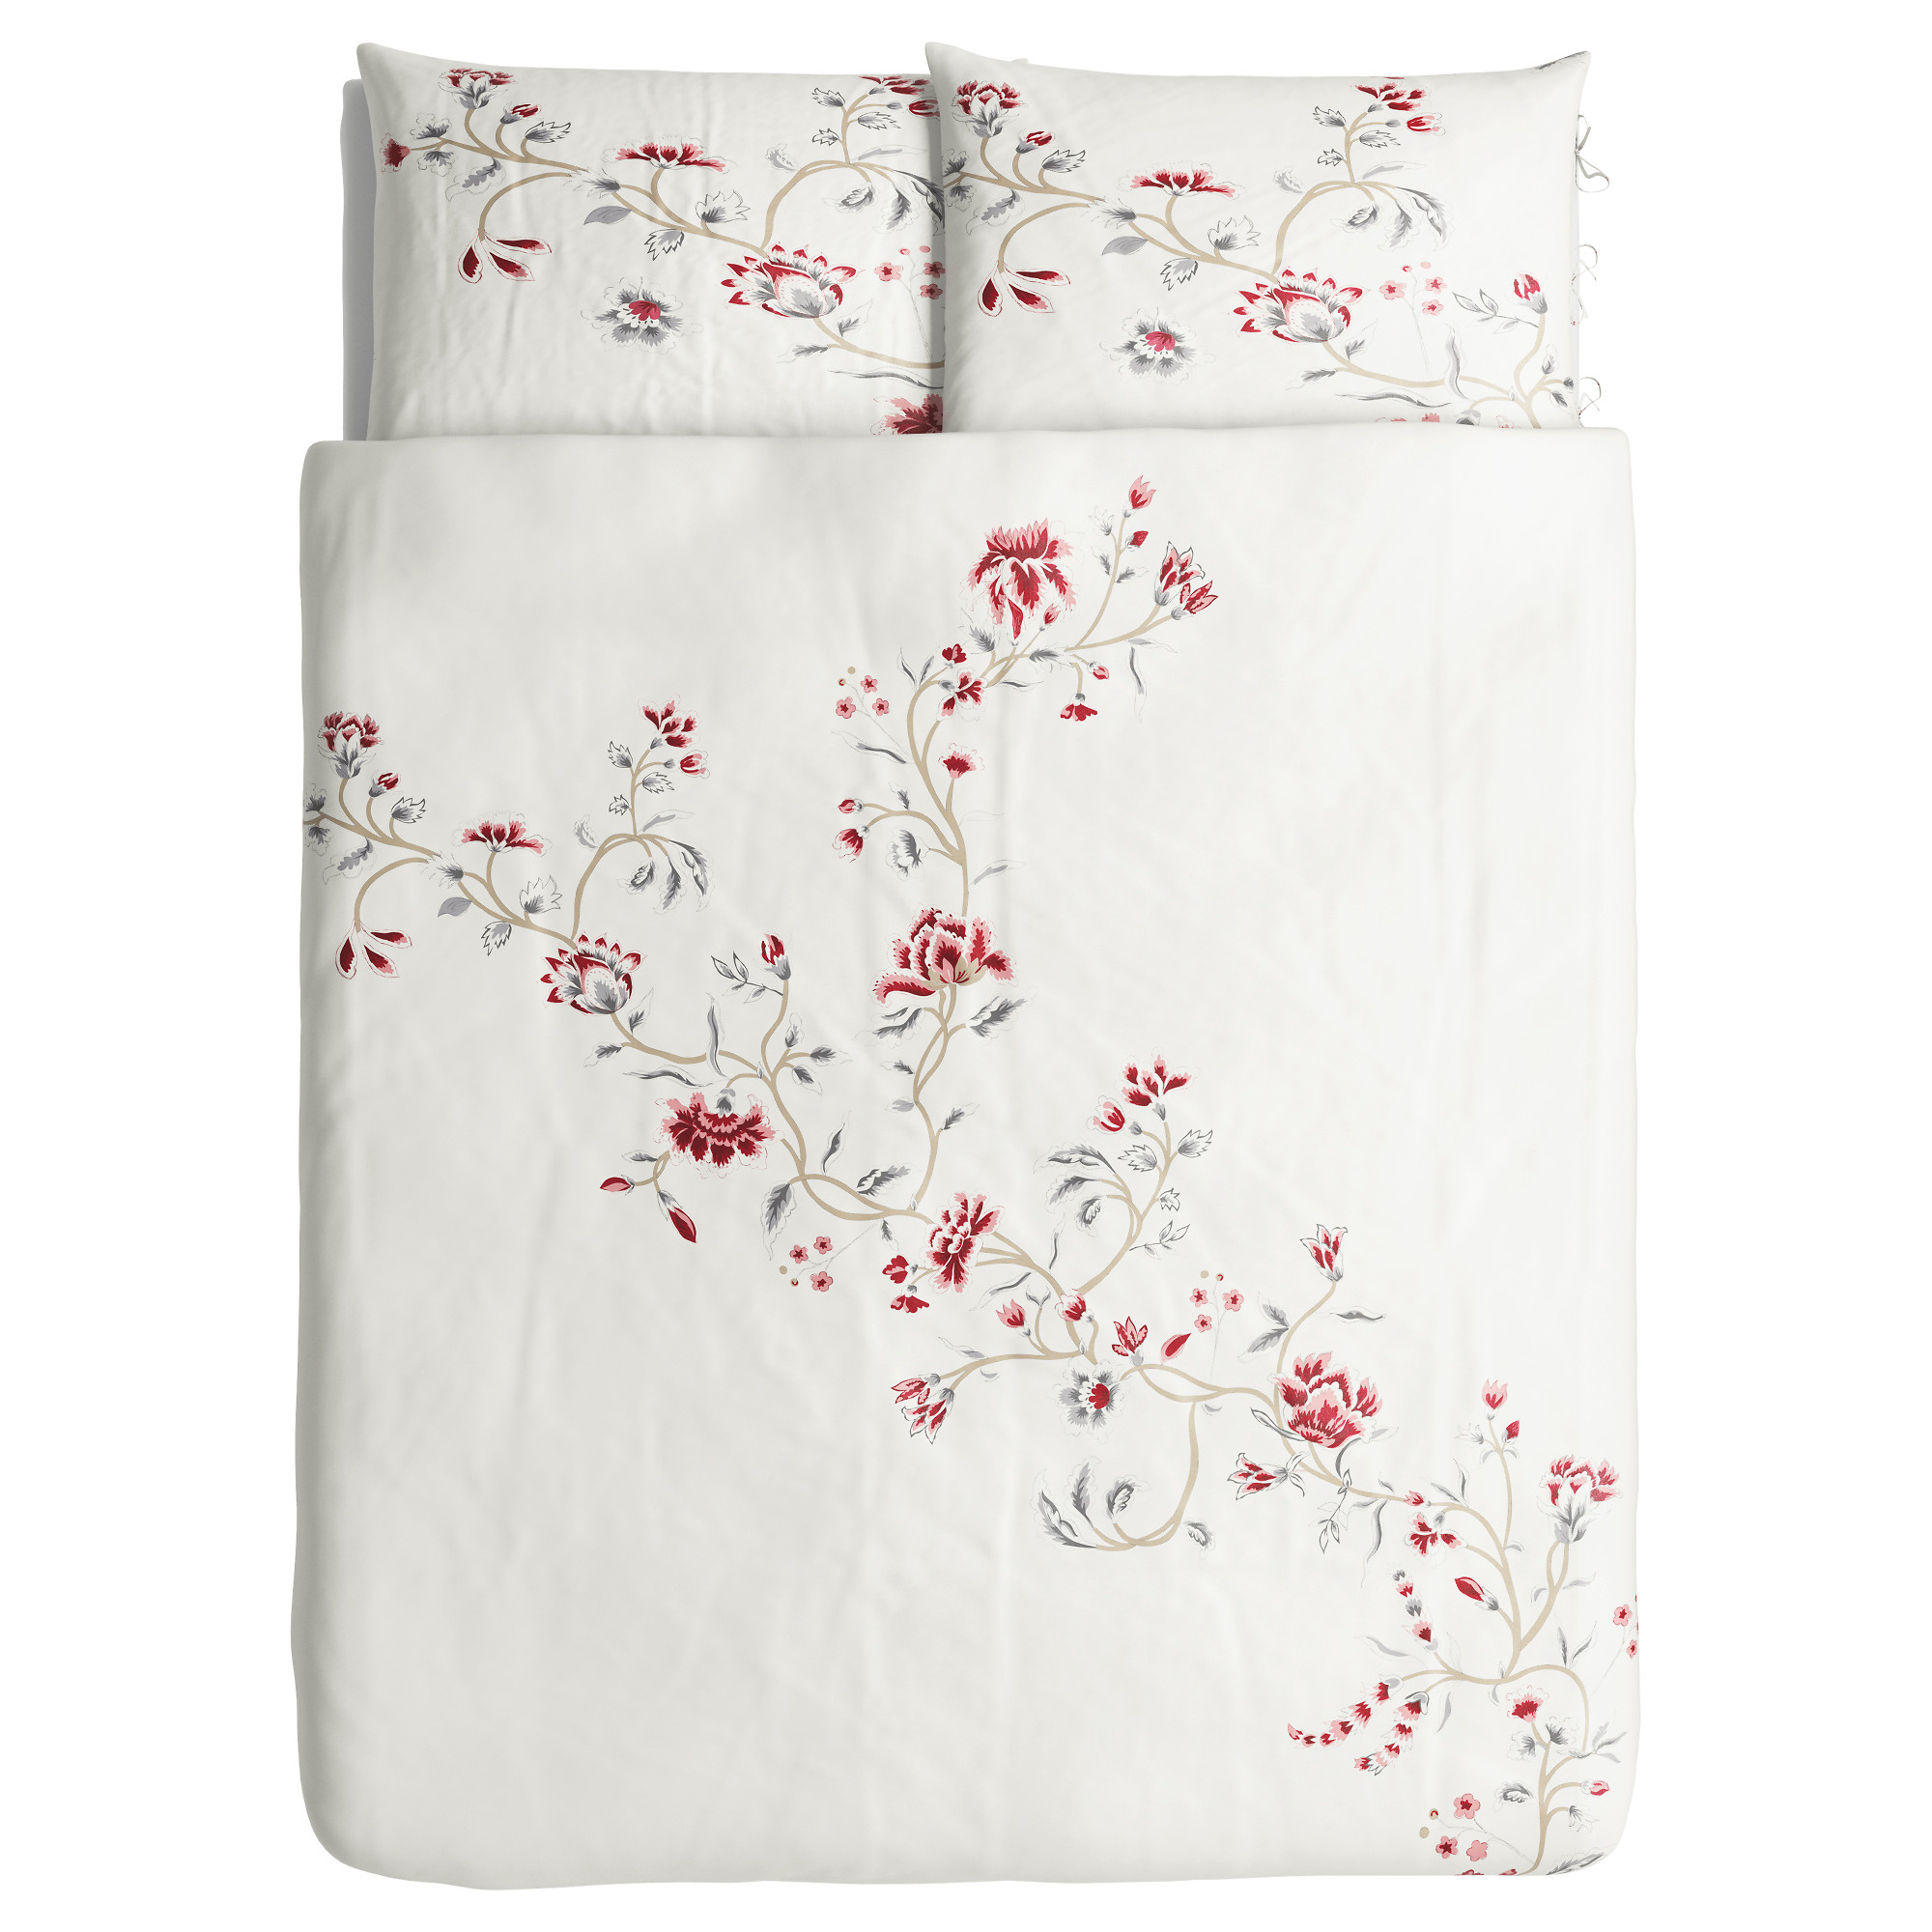 rdbinka duvet cover and pillowcases fullqueen doublequeen ikea - Floral Duvet Covers